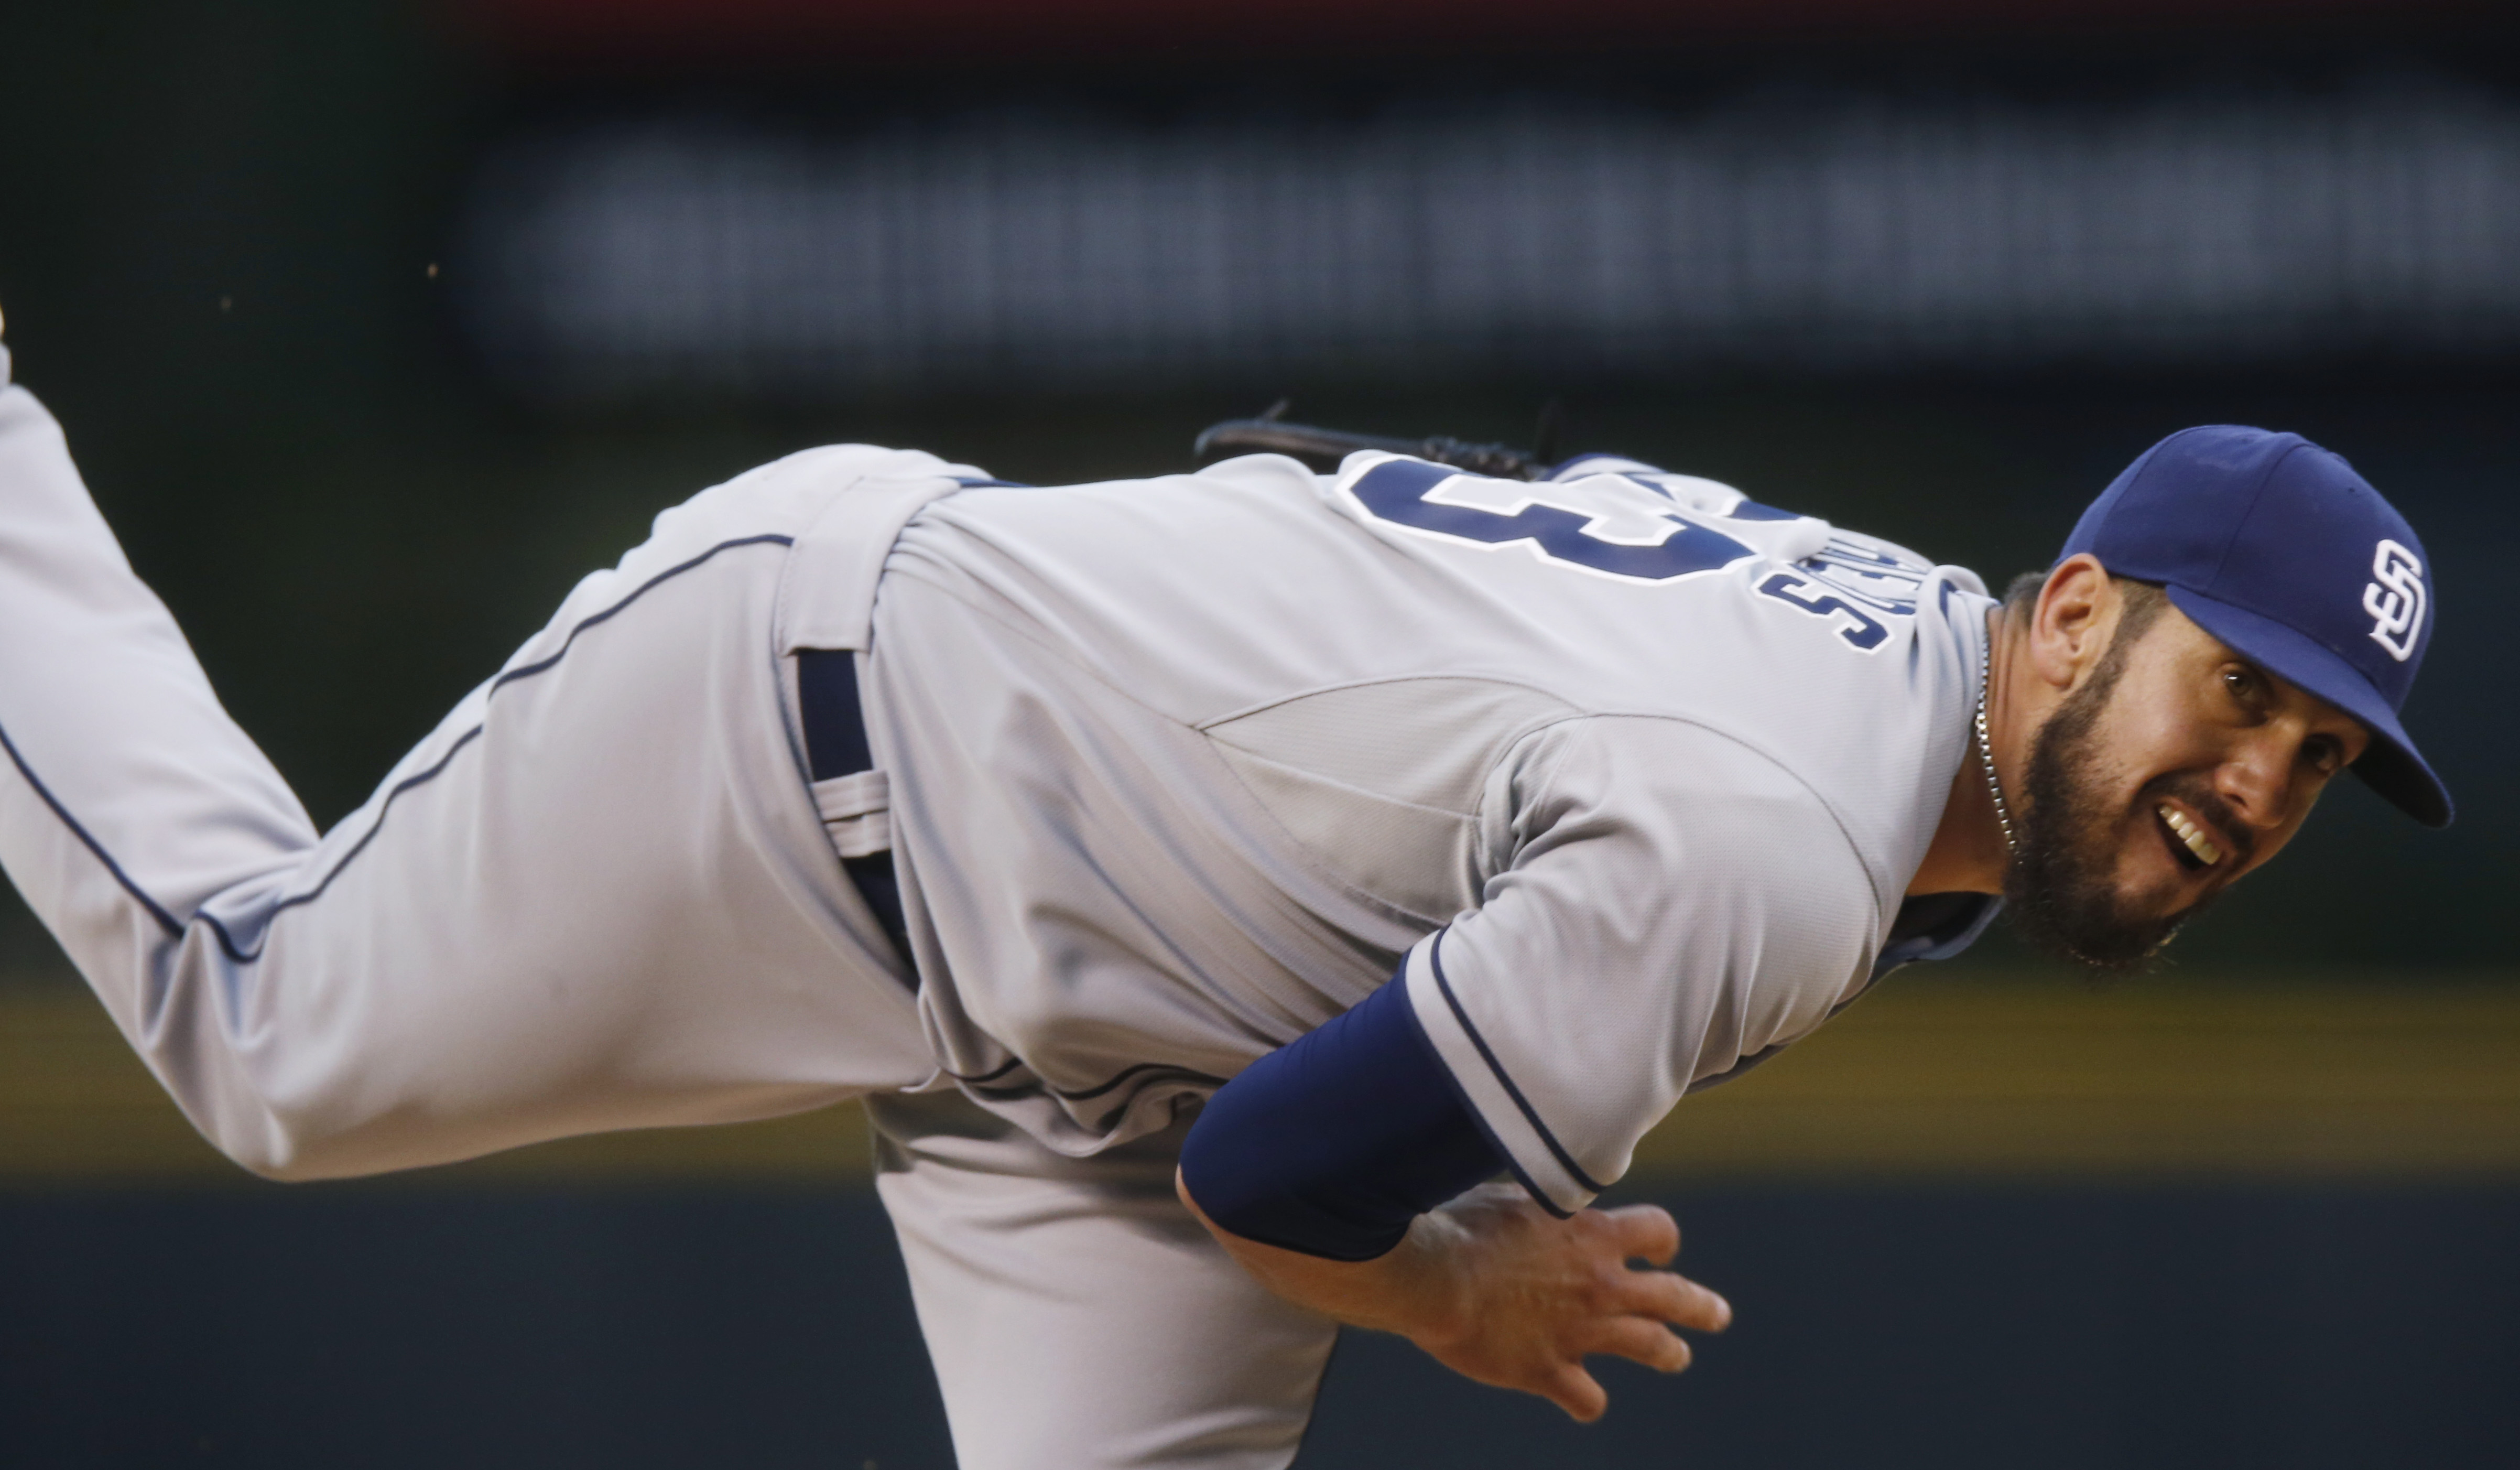 San Diego Padres starting pitcher James Shields (33) delivers a pitch against the Colorado Rockies in the first inning of a baseball game Wednesday, April 22, 2015, in Denver. (AP Photo/David Zalubowski)